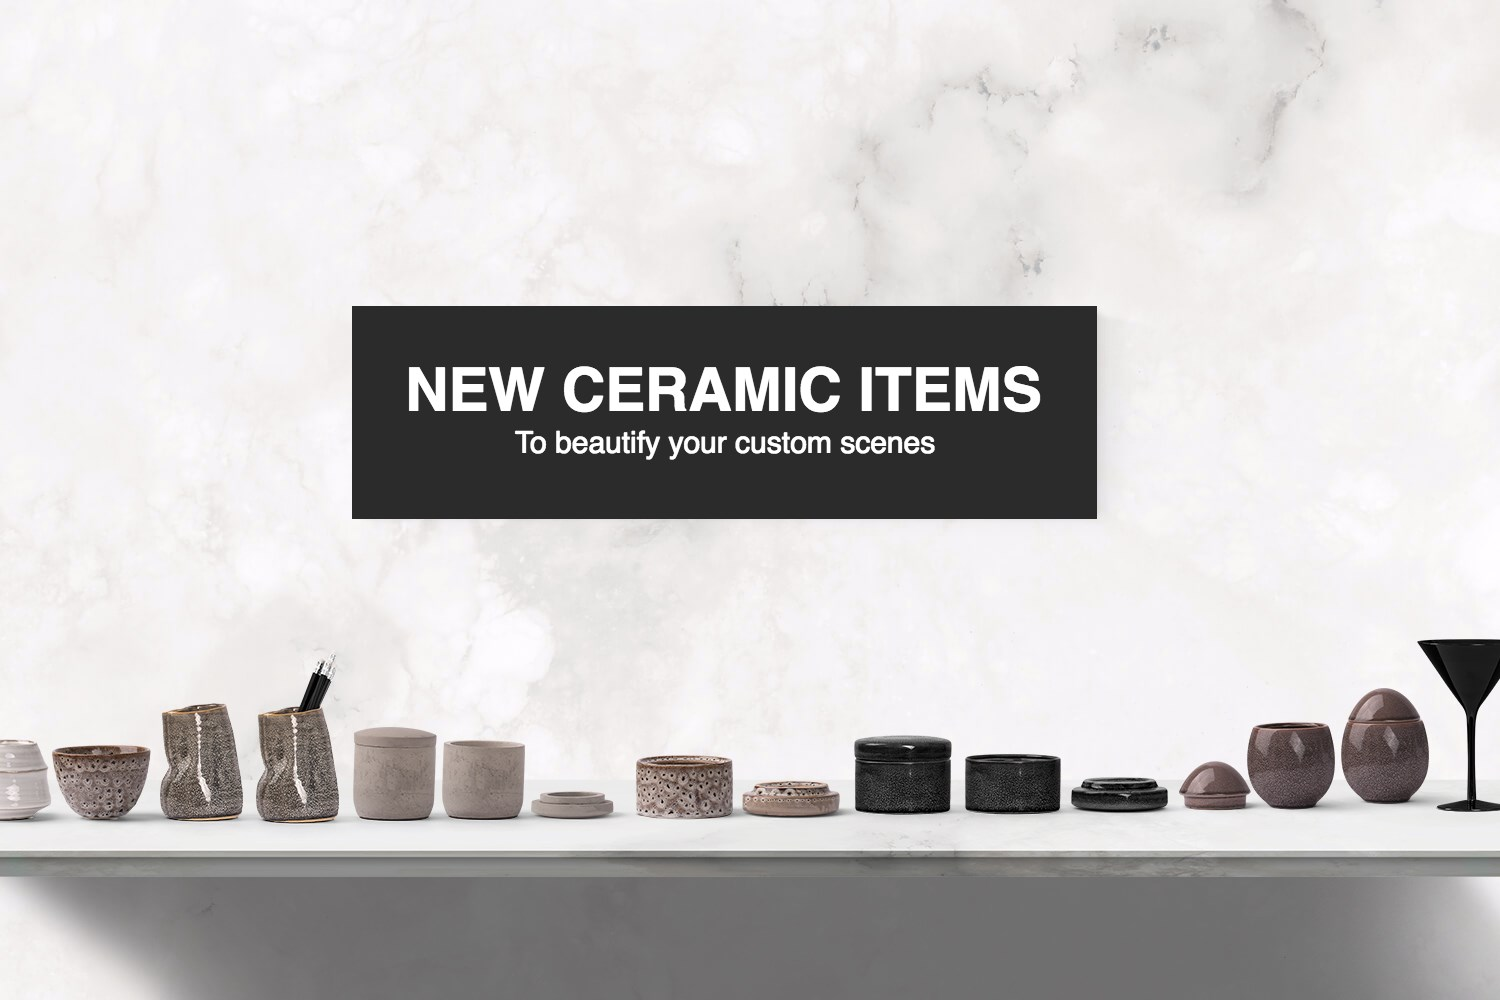 Mockupeditor.com - https://mockupeditor.com/editor/xVcKg7SwW0Cyw9o68ncipg/New-Ceramic-Items?utm_source=meblog&utm_medium=blog&utm_campaign=ceramic-pack